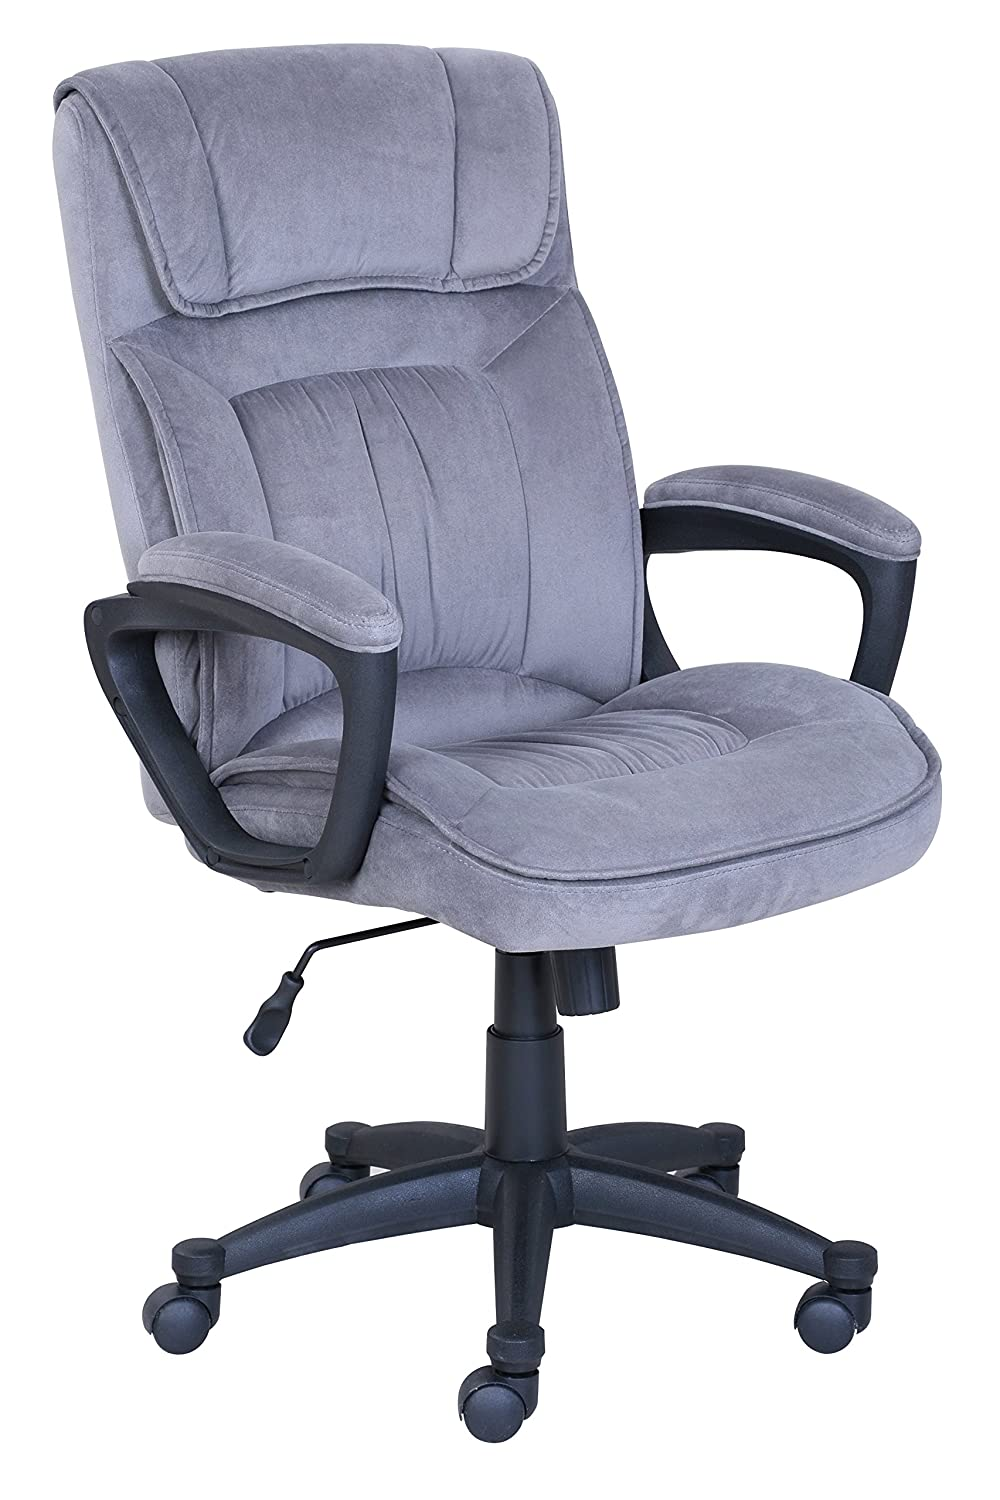 a very useful guide on how to buy the best office chairs